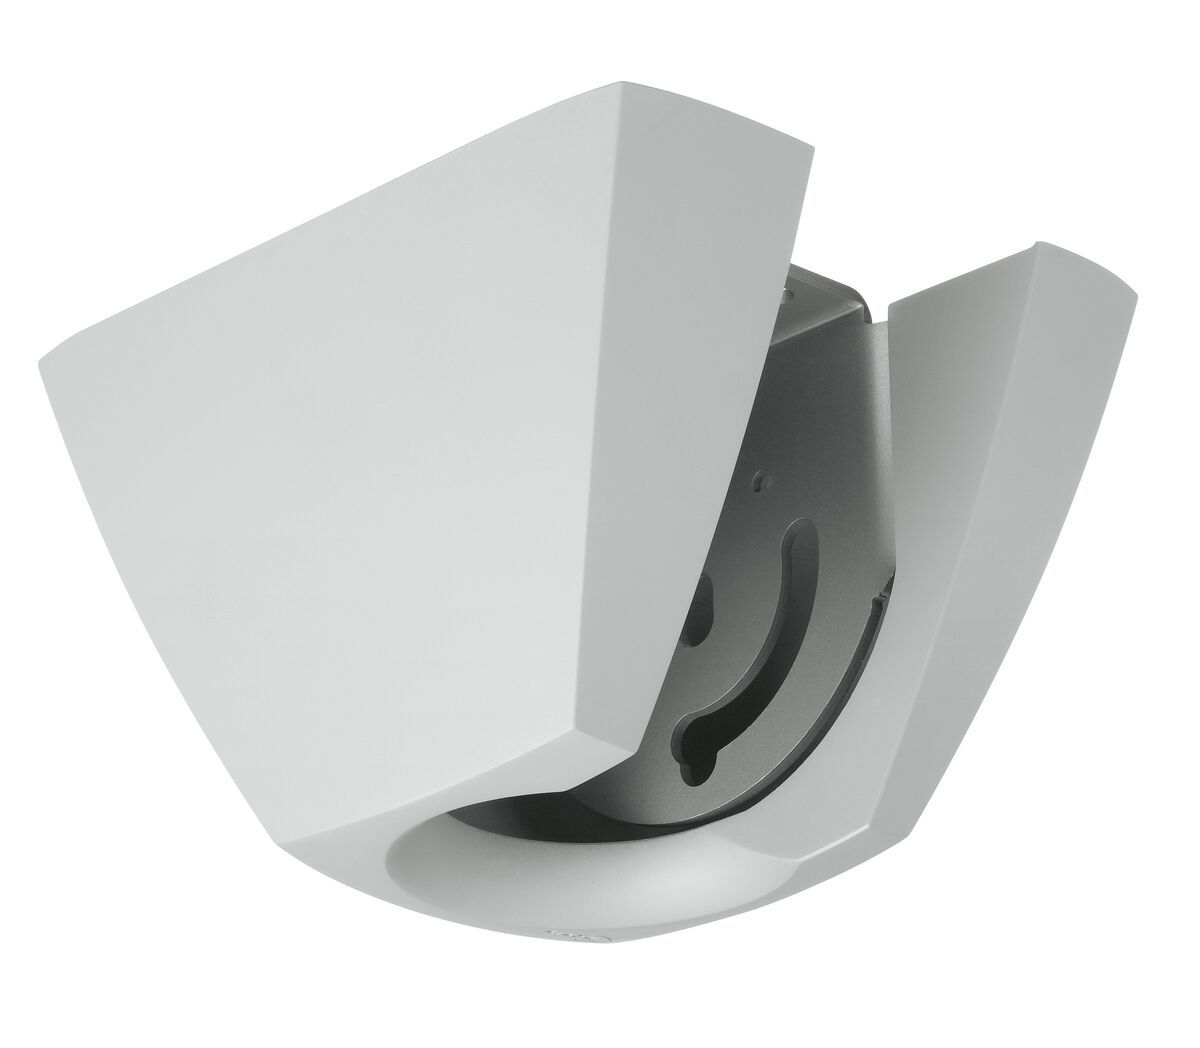 Vogel's PFA 9010 Piastra a soffitto - Product